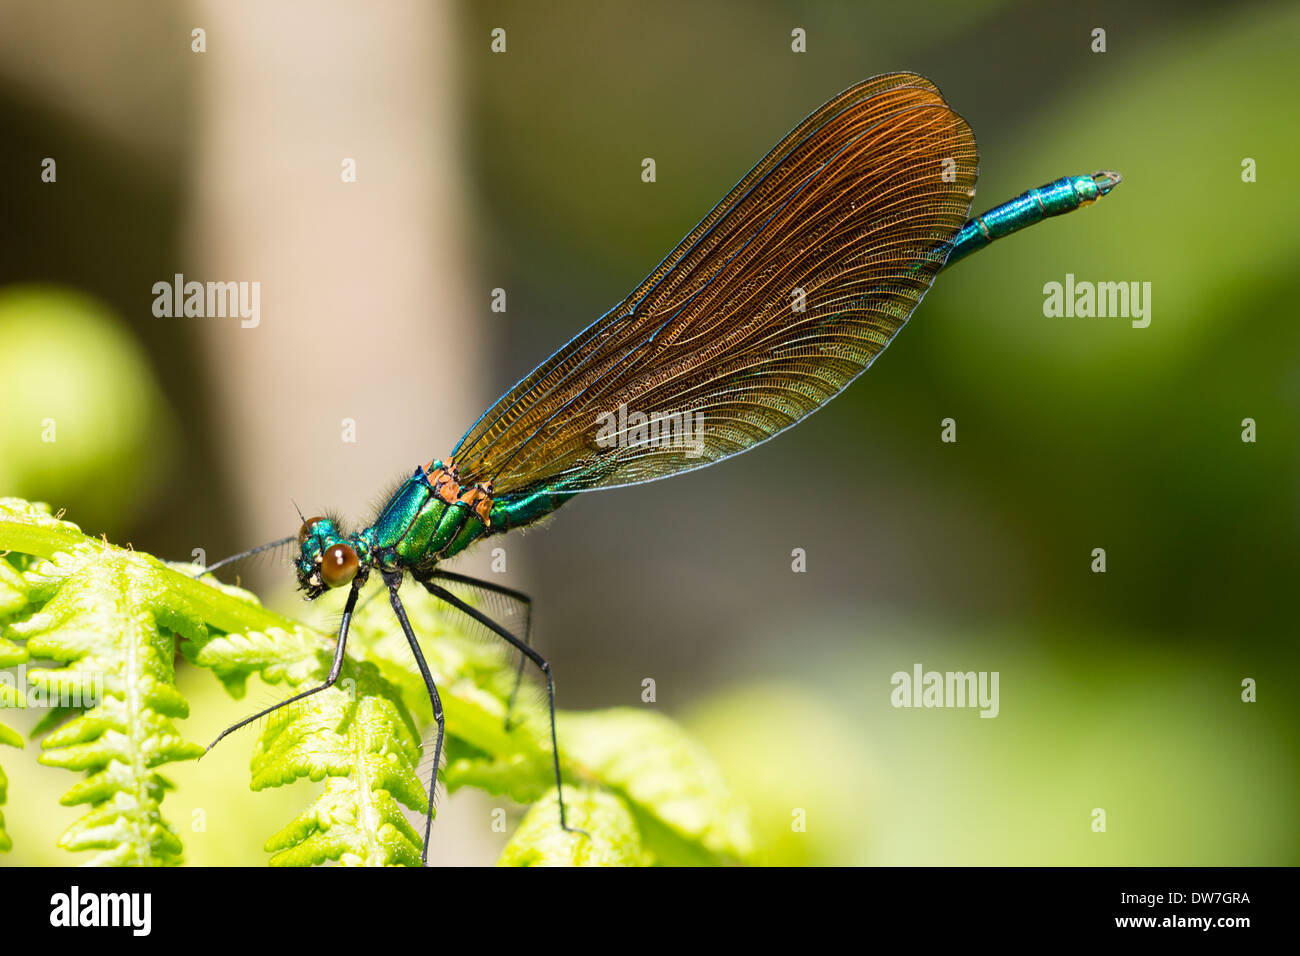 Immature male Beautiful demoiselle, Calopteryx virgo, showing brown rather than irridescent blue wings Stock Photo